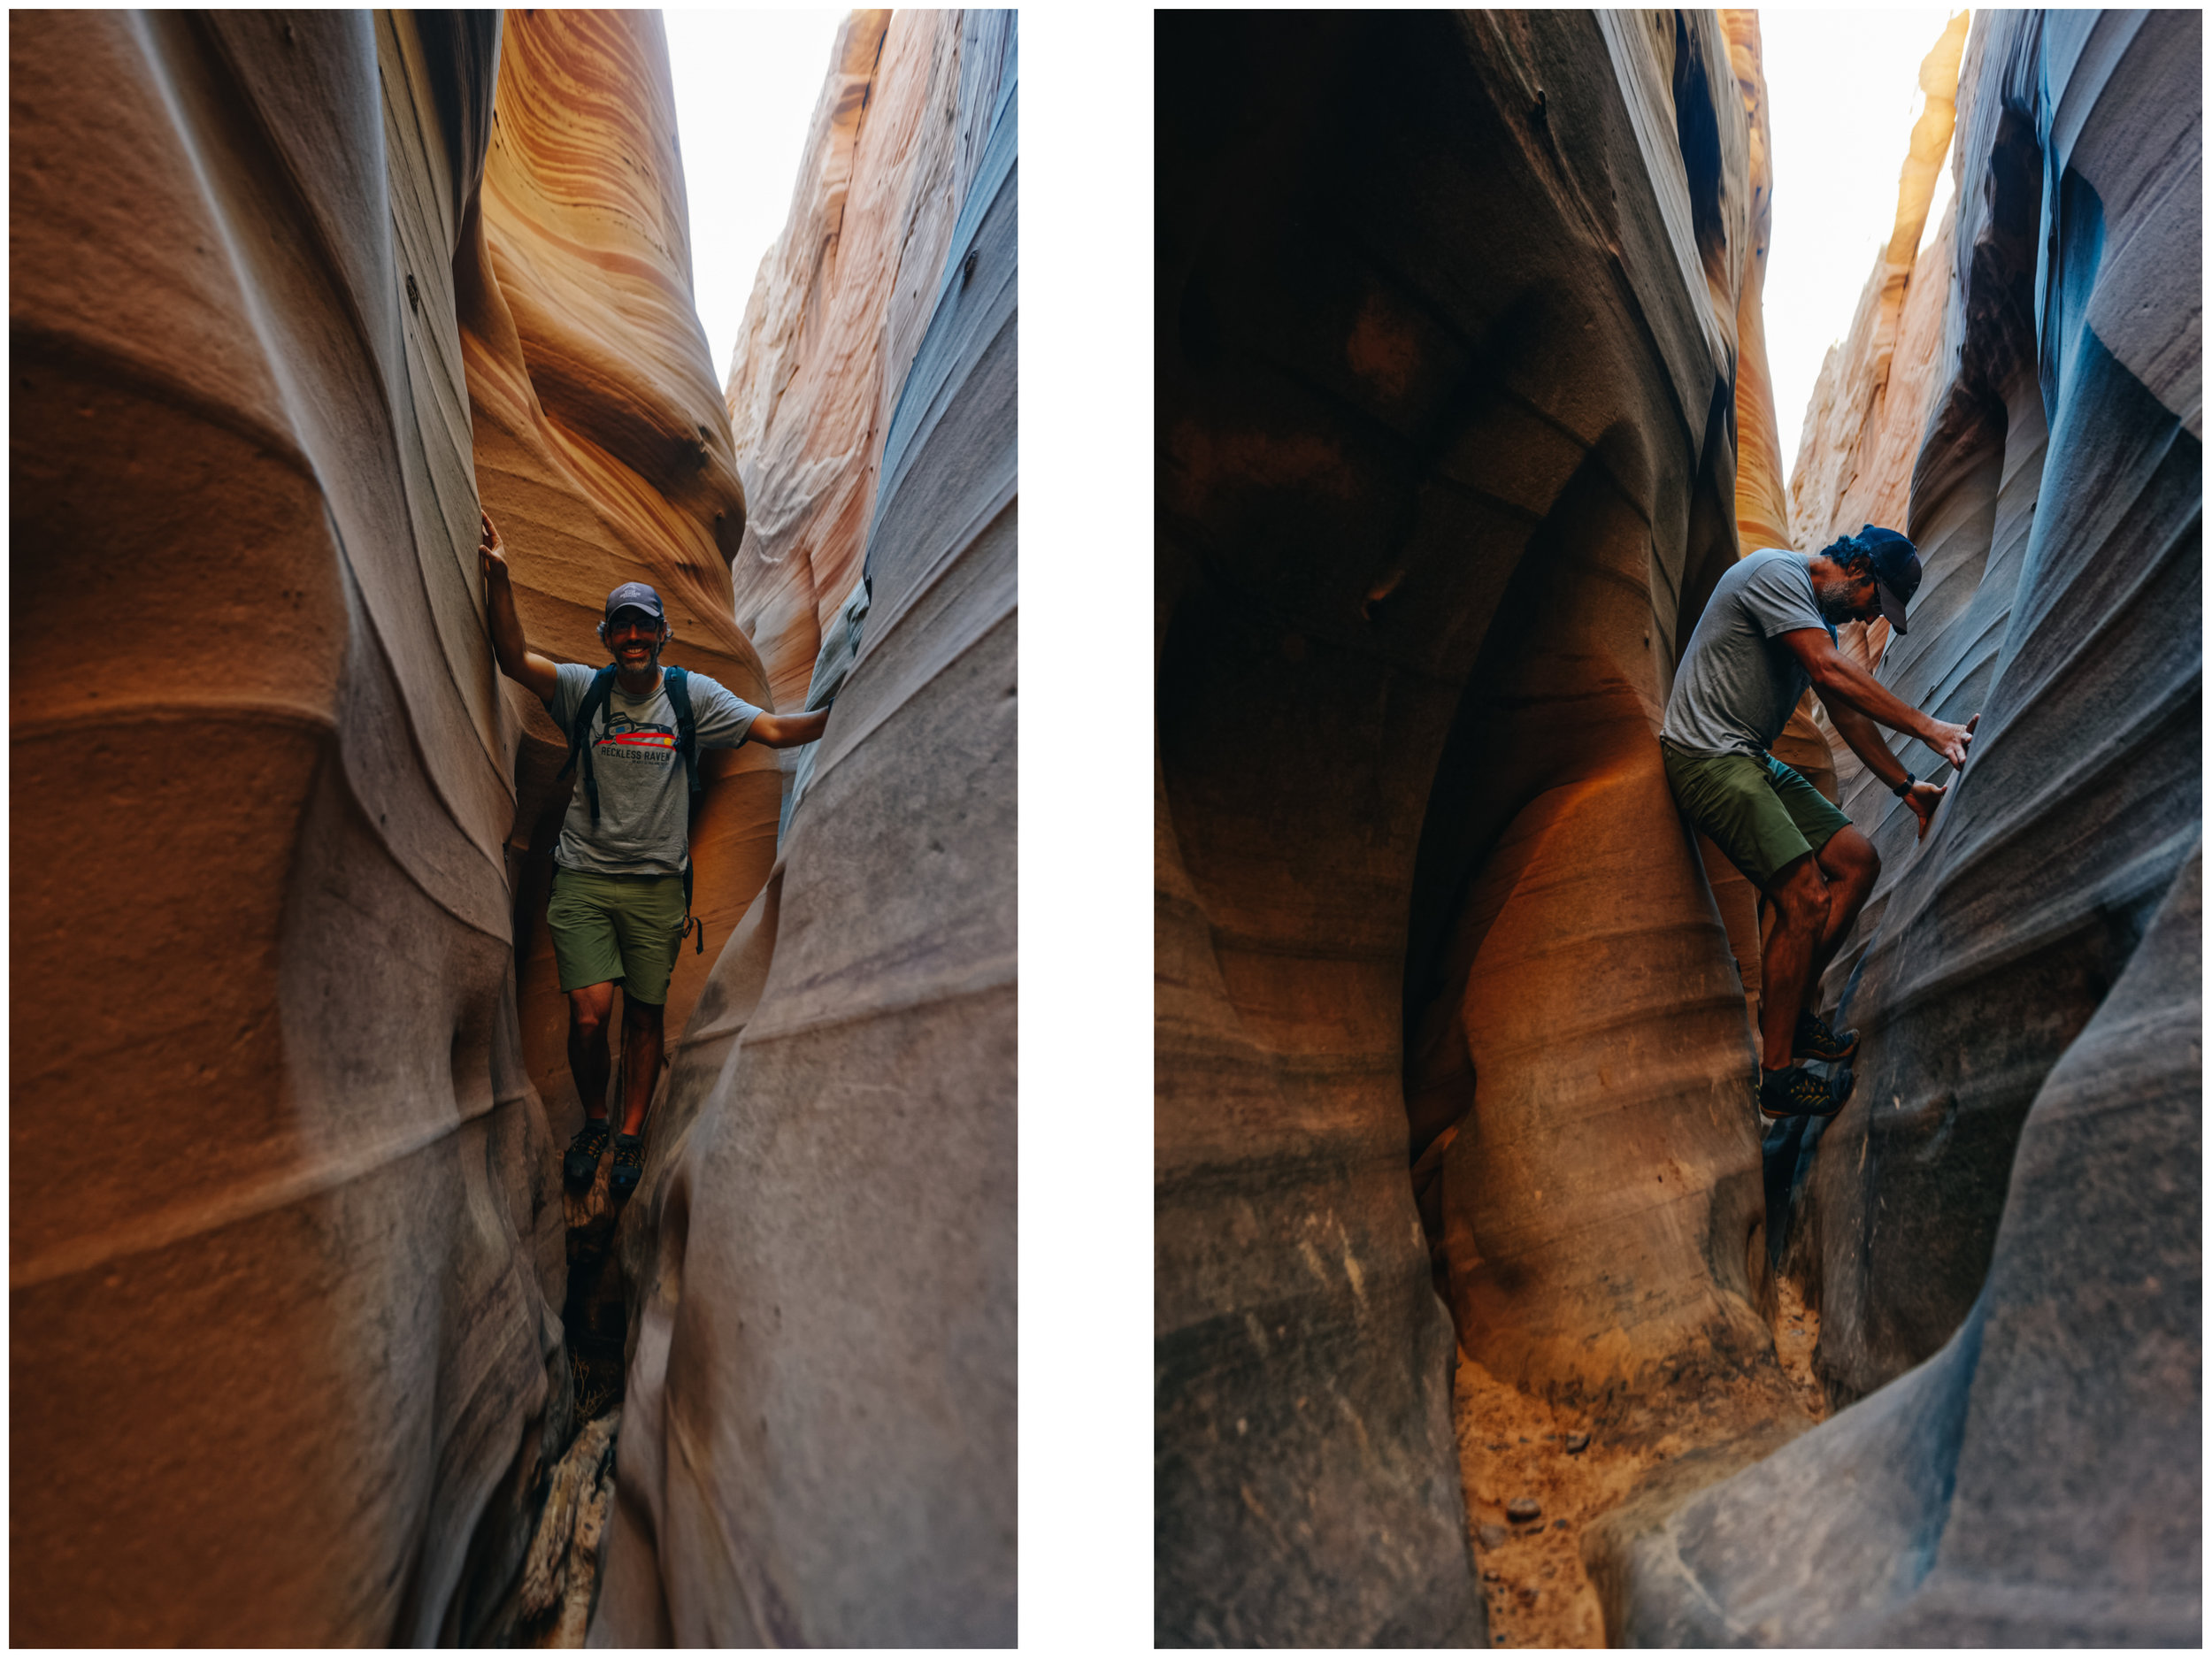 Being tall is not always a good thing when exploring slot canyons.